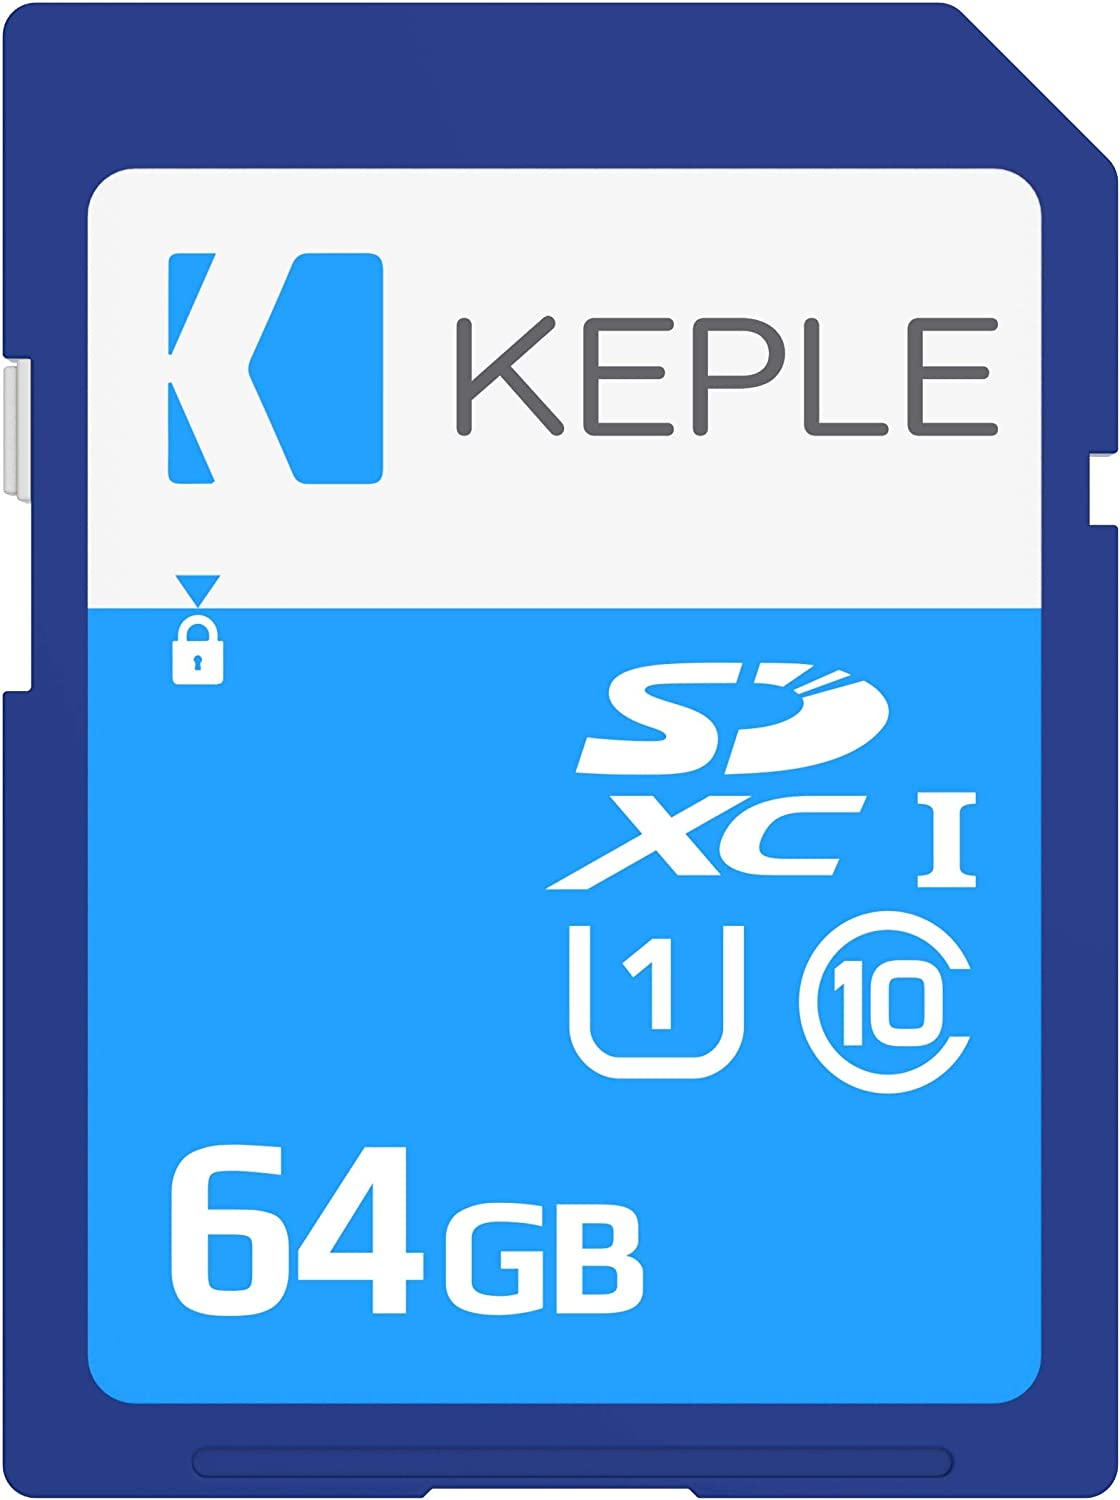 64GB SD Memory Card | SD Card Compatible with Nikon Coolpix Series S30, S31, S32, S33, S2900, S3300, S3700, S4300, S6300, S6800, S6900, S6400, S7000, S800C, S9300, S9700, S9900 SLR Camera | 64 GB